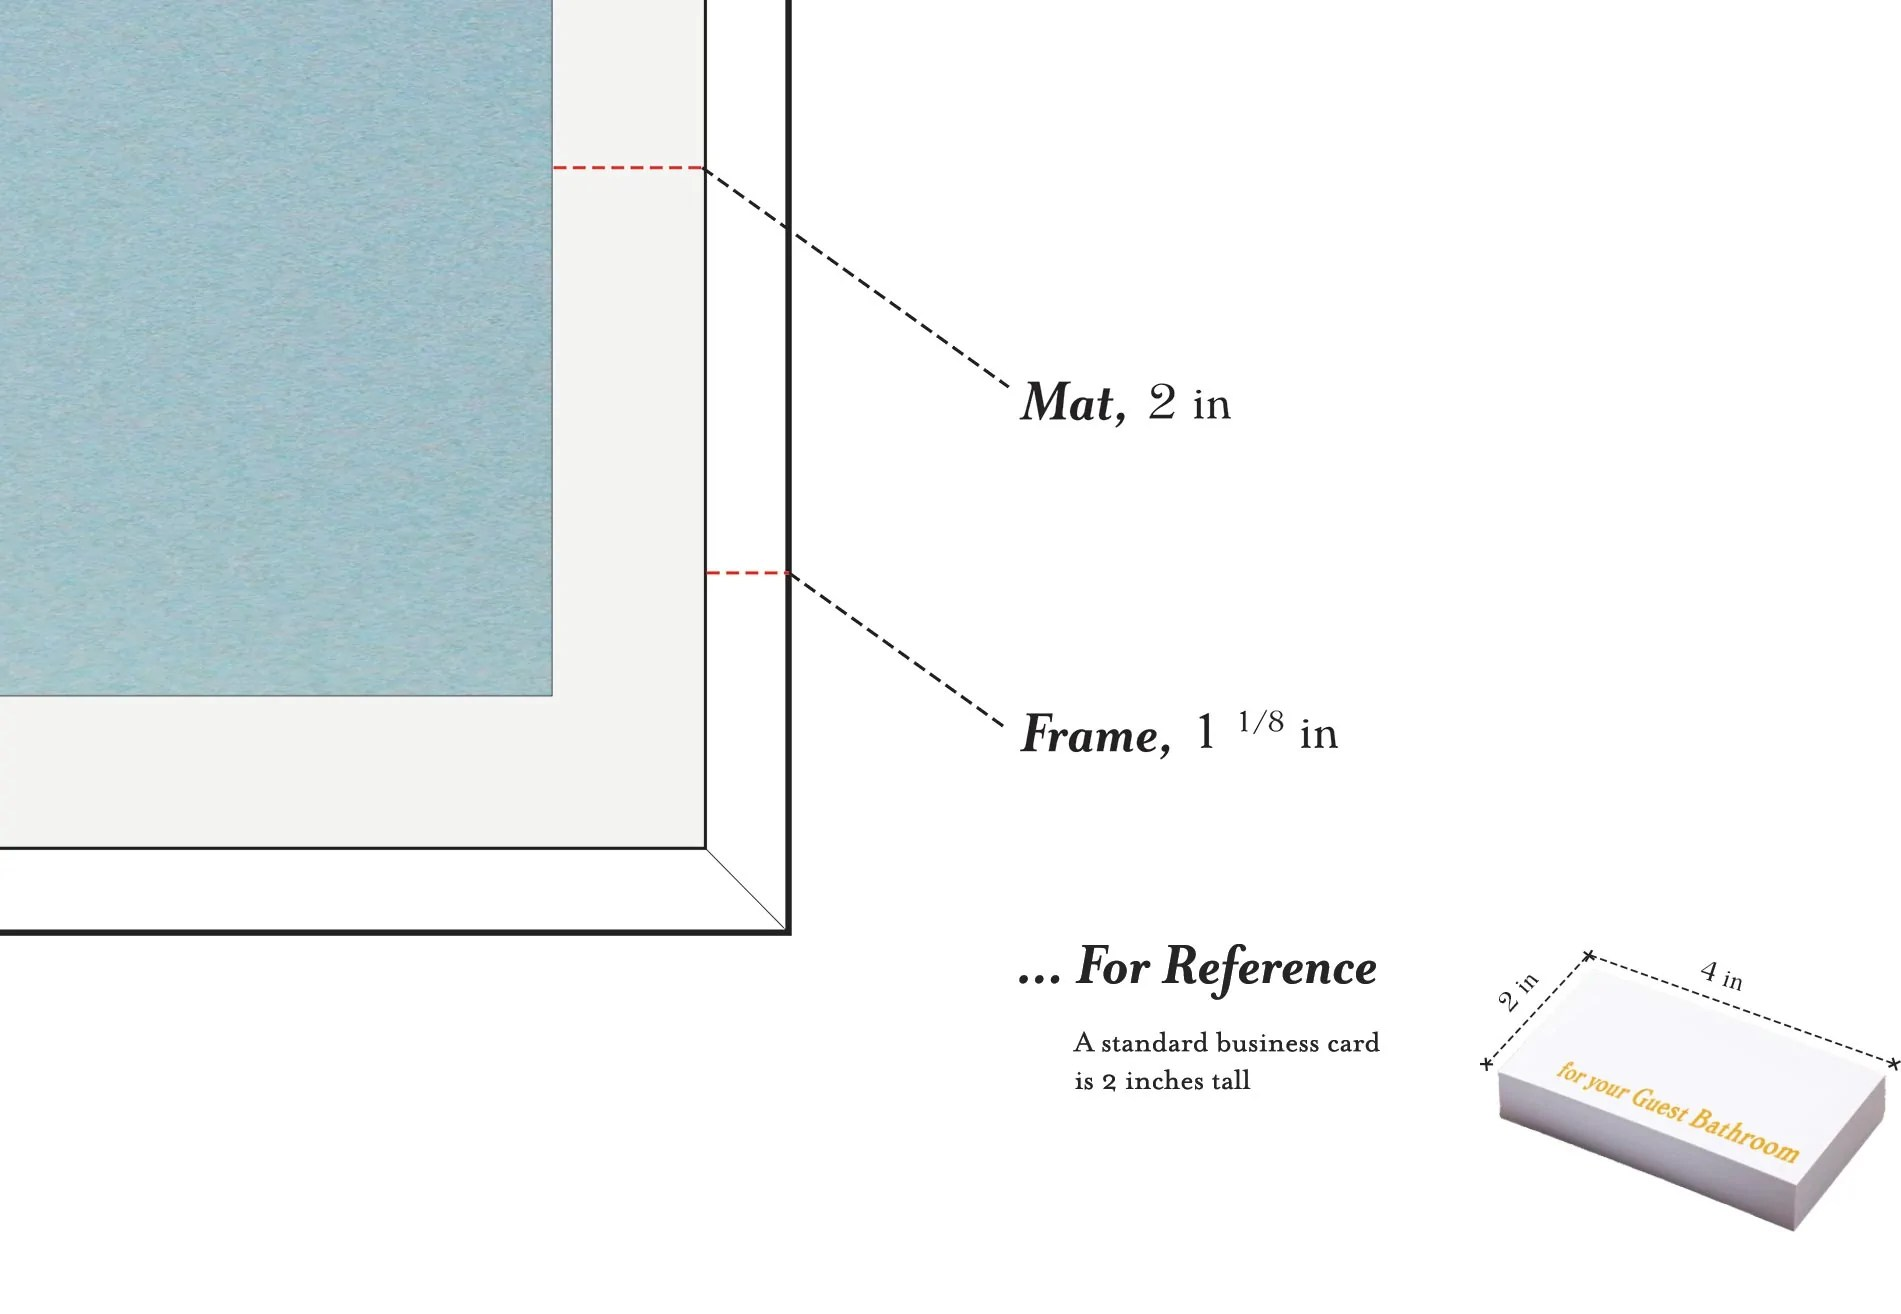 mat and frame dimensions